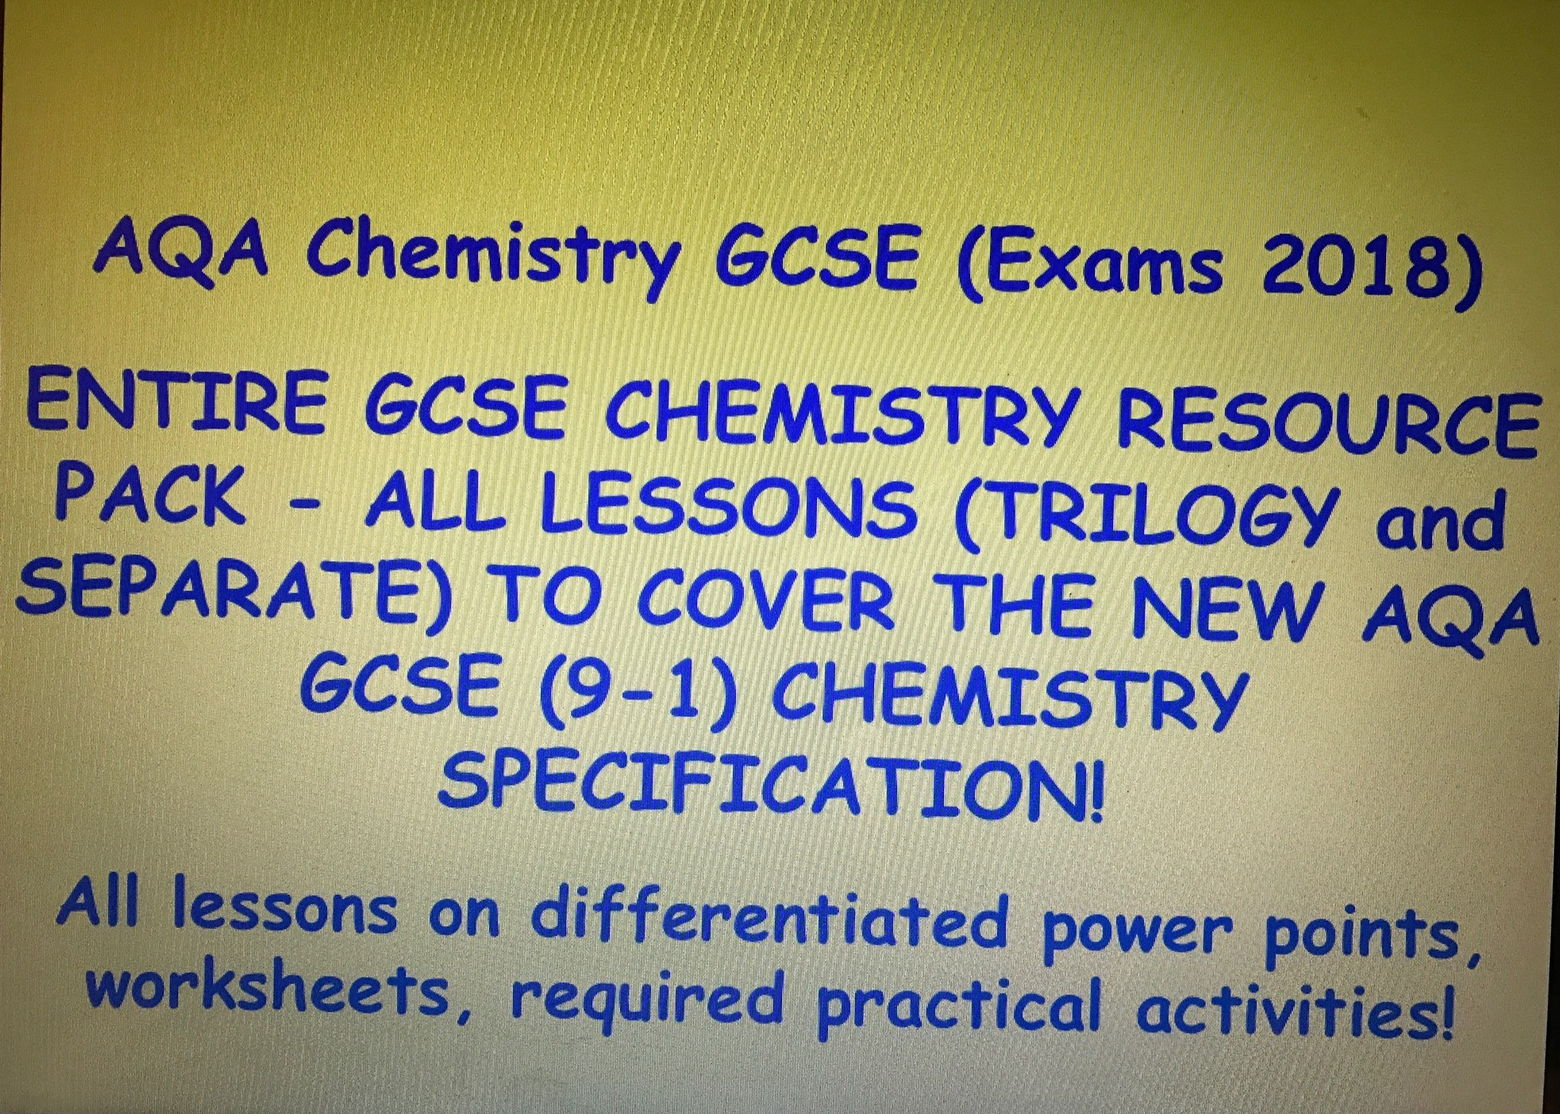 AQA New GCSE Chemistry 9-1 (Exams 2018) - ENTIRE RESOURCE PACK, ALL LESSONS for entire course!!